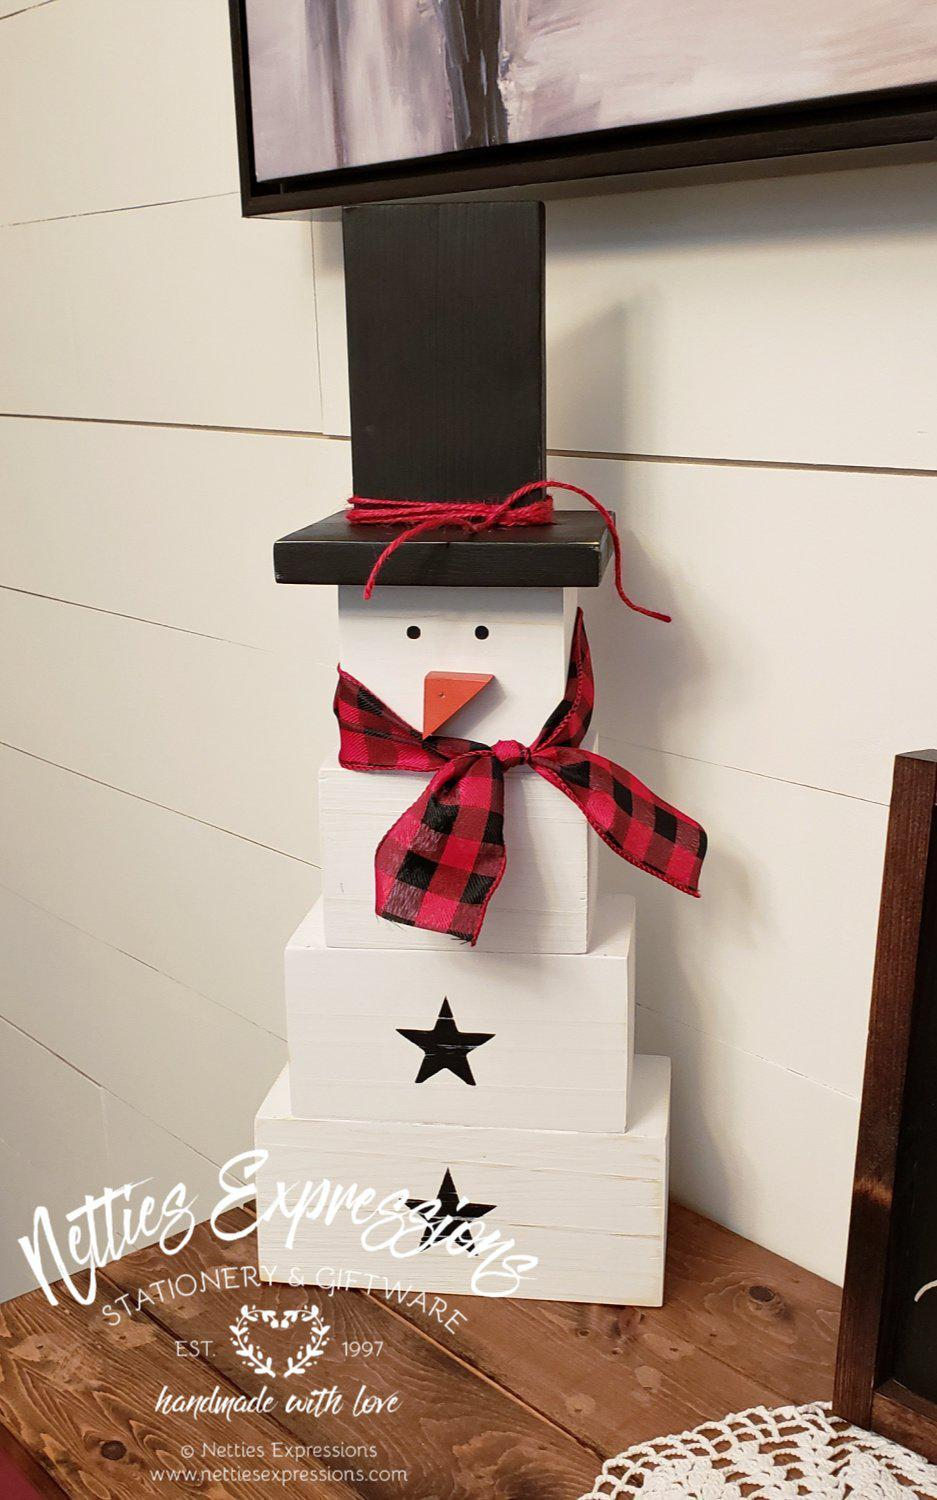 Large Wooden Snowman - Netties Expressions